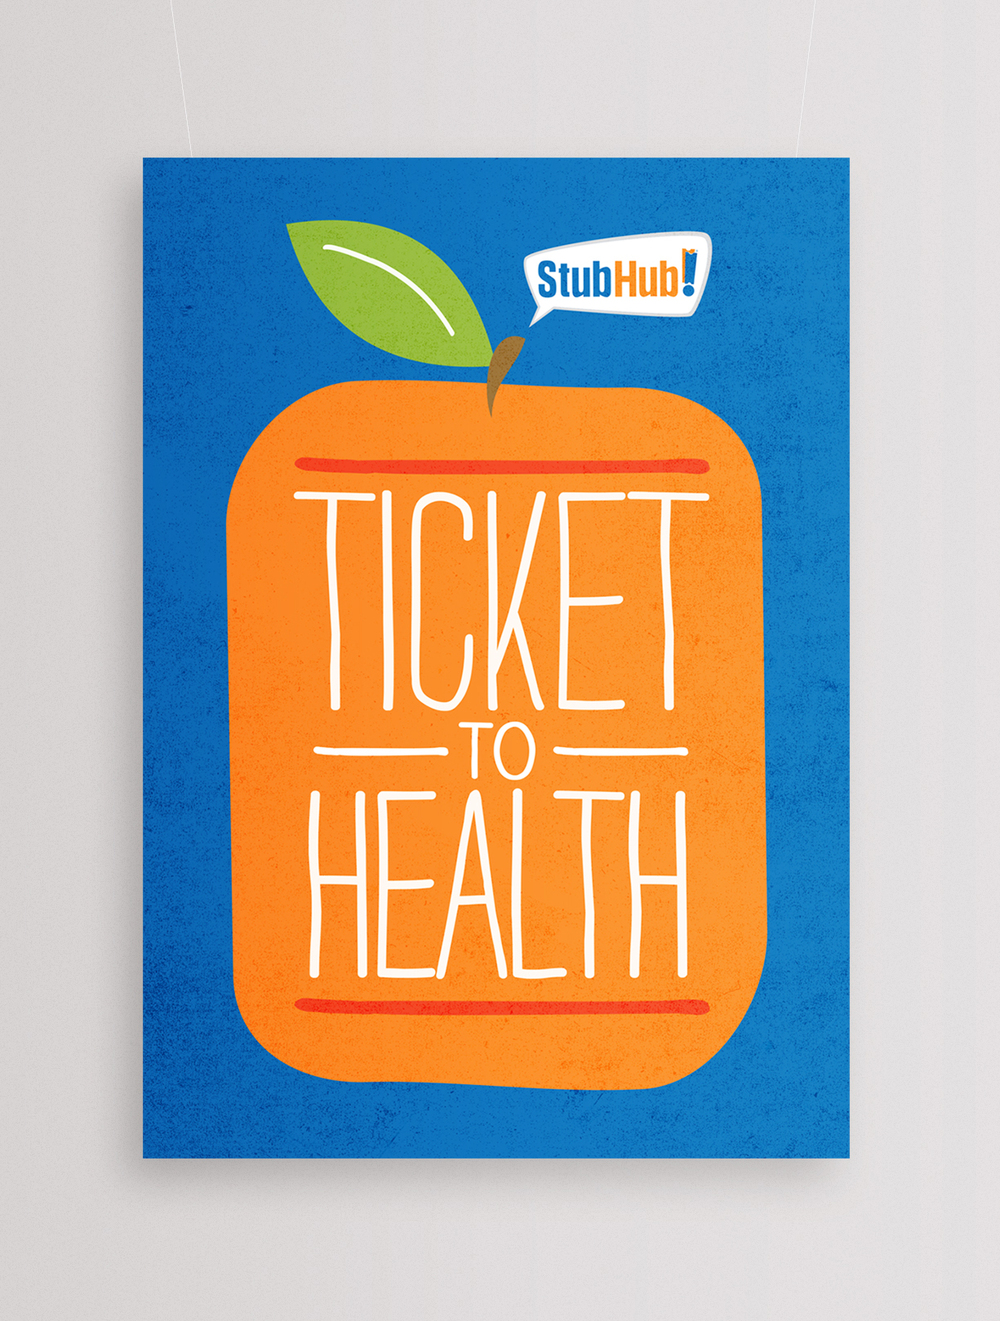 stubhub_Ticket-to-Health_Poster.jpg